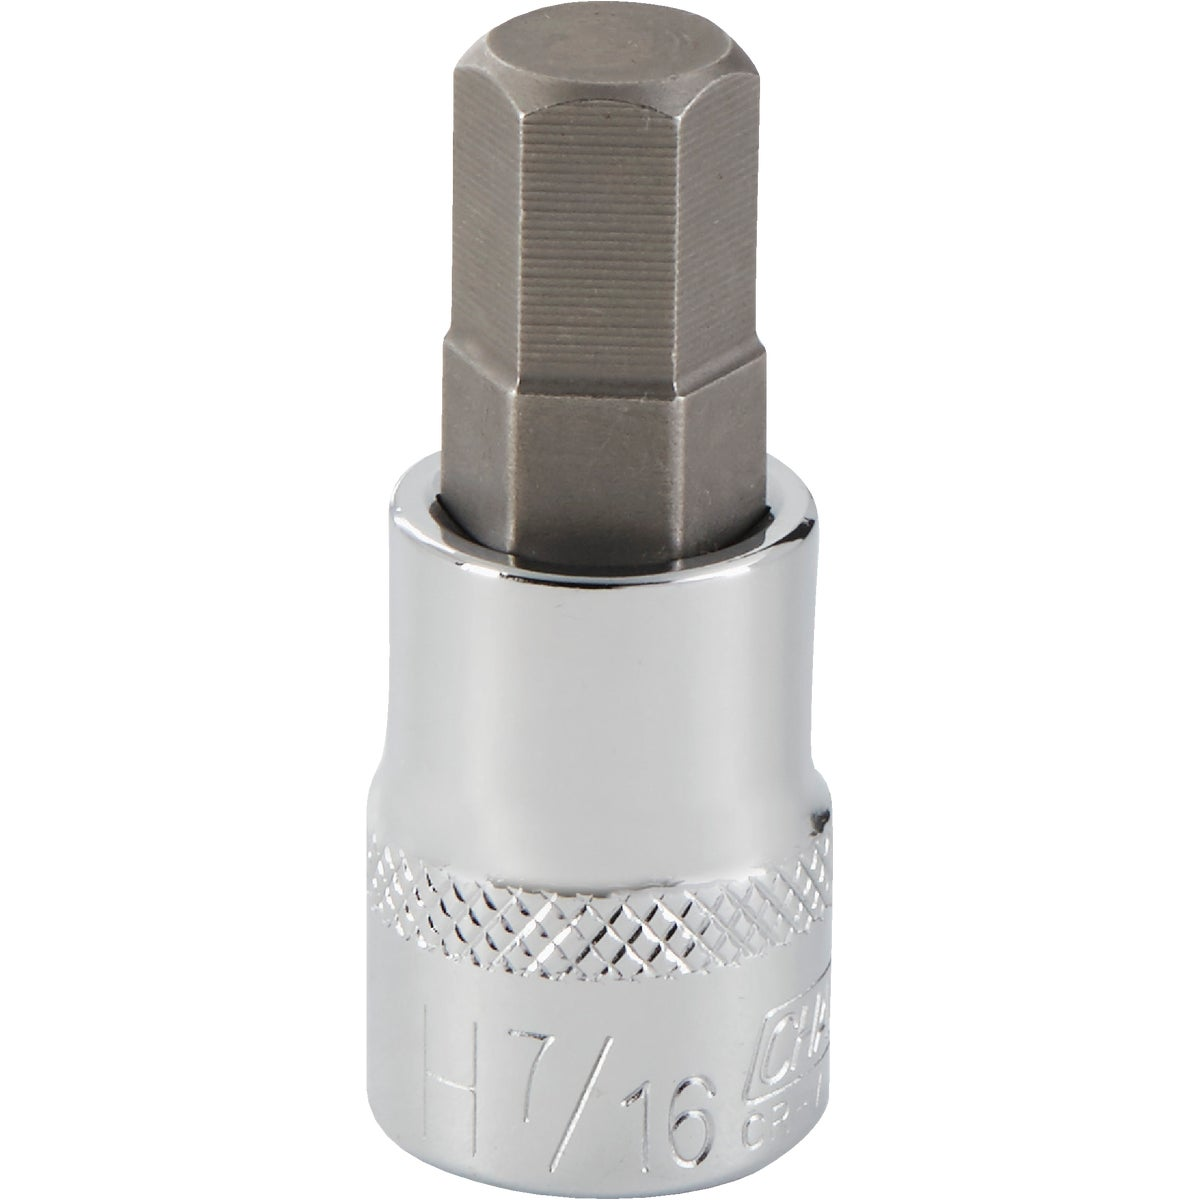 "7/16"" HEX BIT SOCKET - 58854 by Apex Tool Group"